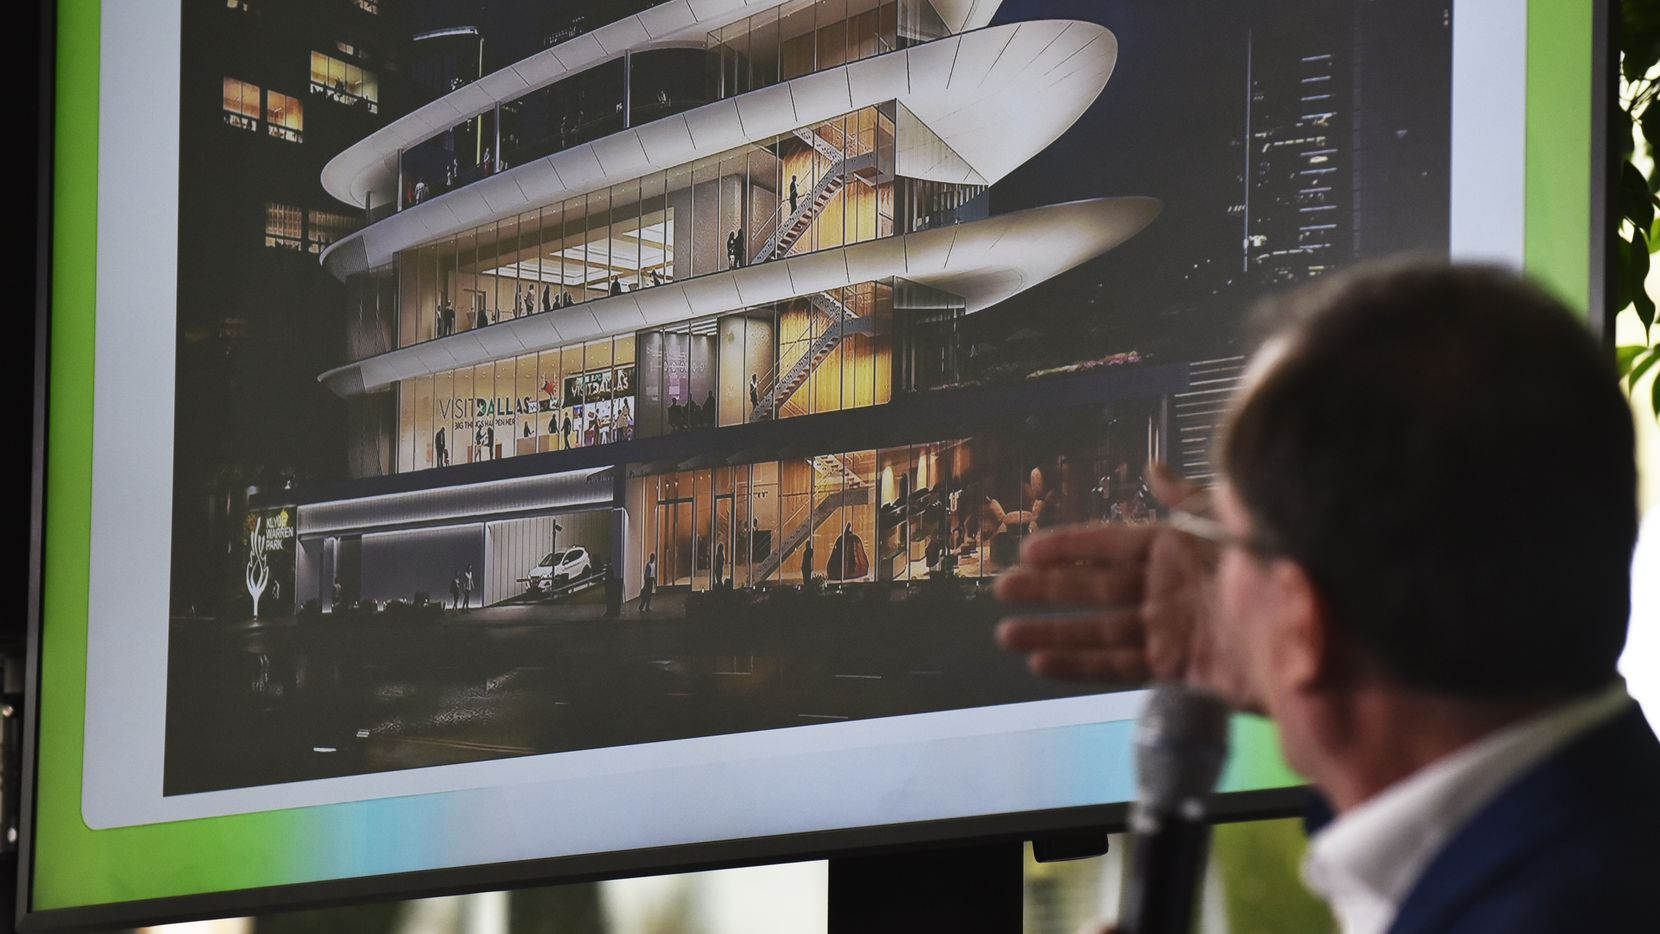 David Epstein, design director for Gensler, speaks about the future expansion of Klyde Warren Park and specifically The Pavilion, shown on screen, Tuesday morning Oct. 15, 2019 at a press conference held at the restaurant Savor in Dallas.